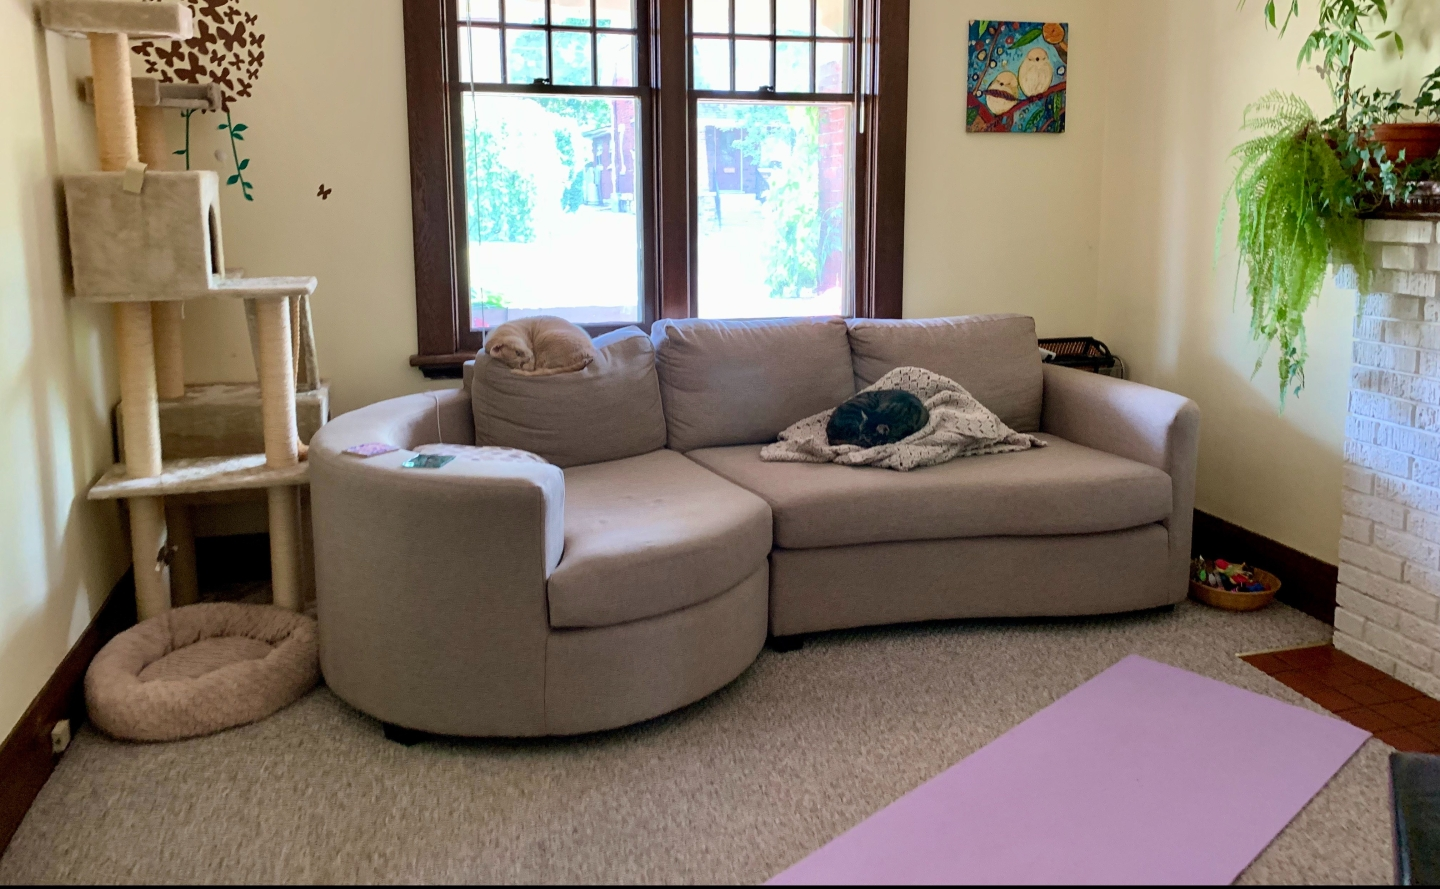 living room with yoga mat and sleeping cats